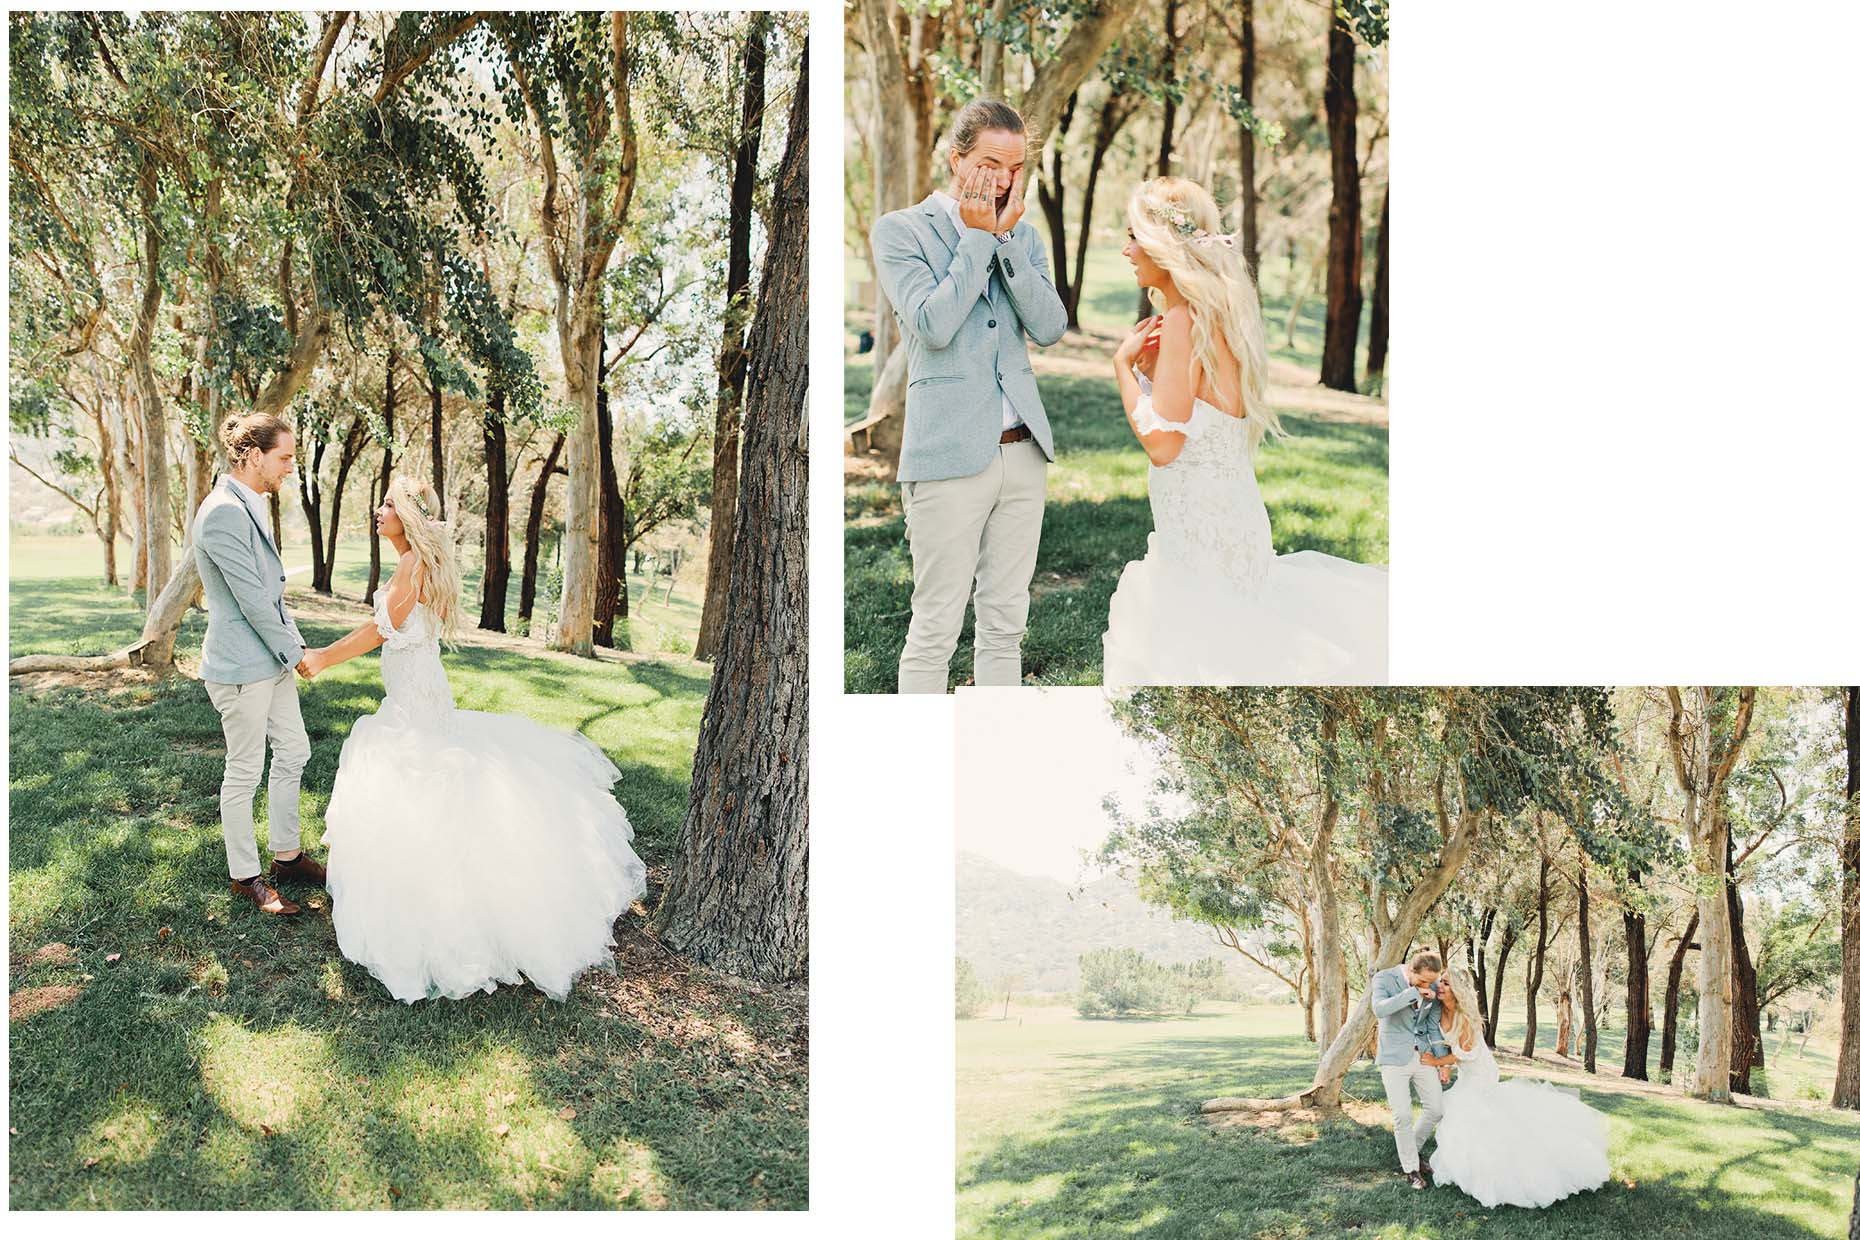 TemeculamostcreativeweddingphotographertopratedyelpStoneweddinghousetemeculacreekinn1